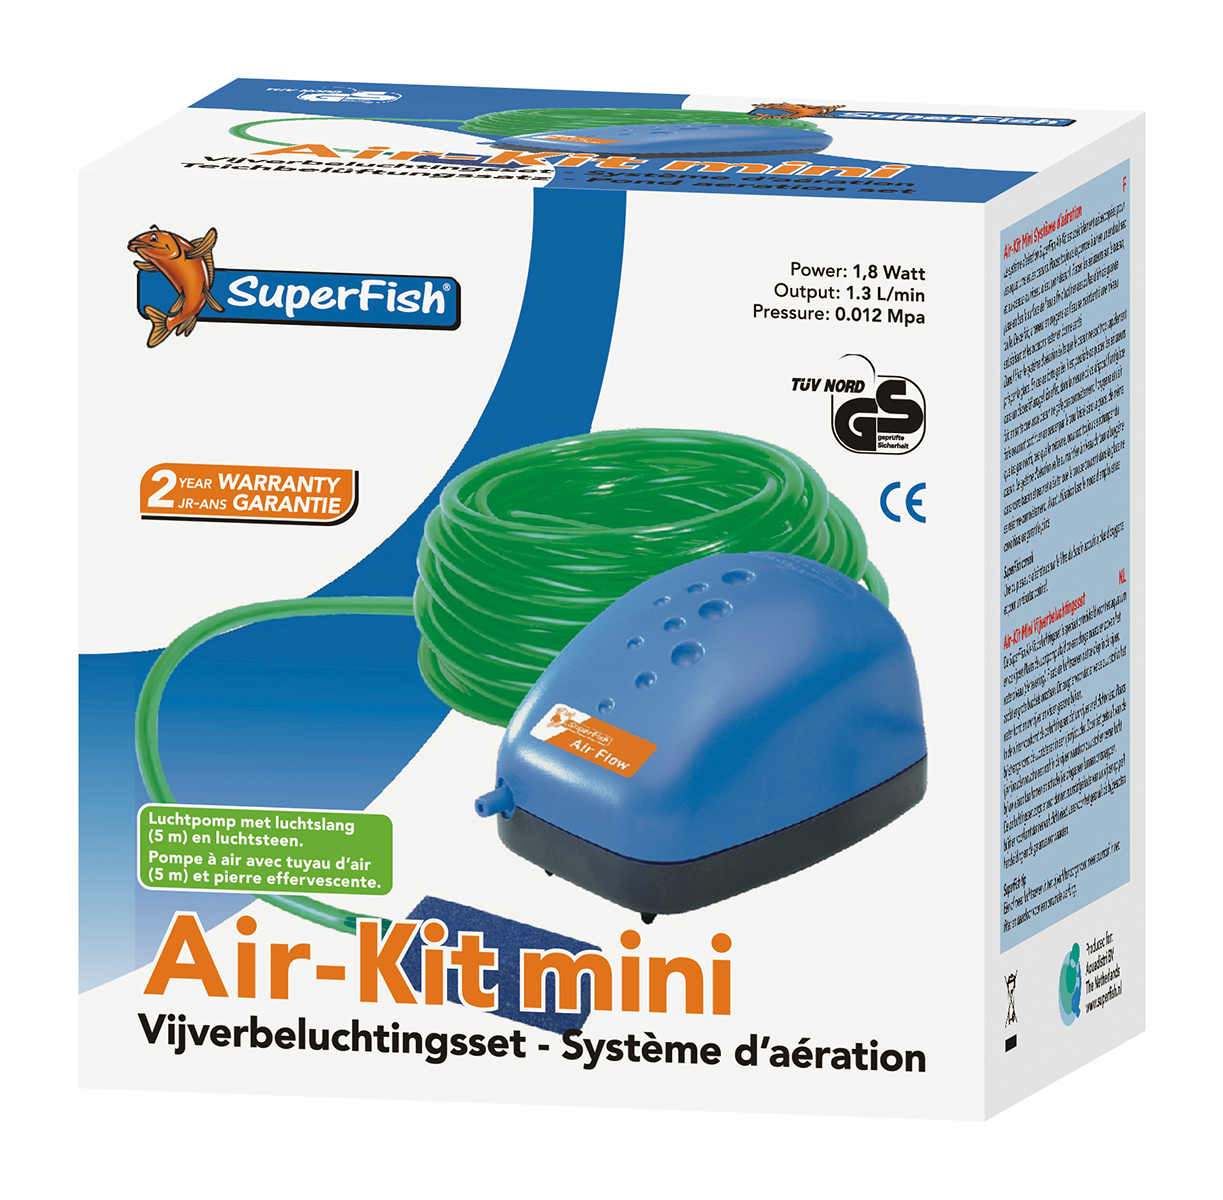 Superfish air kit mini